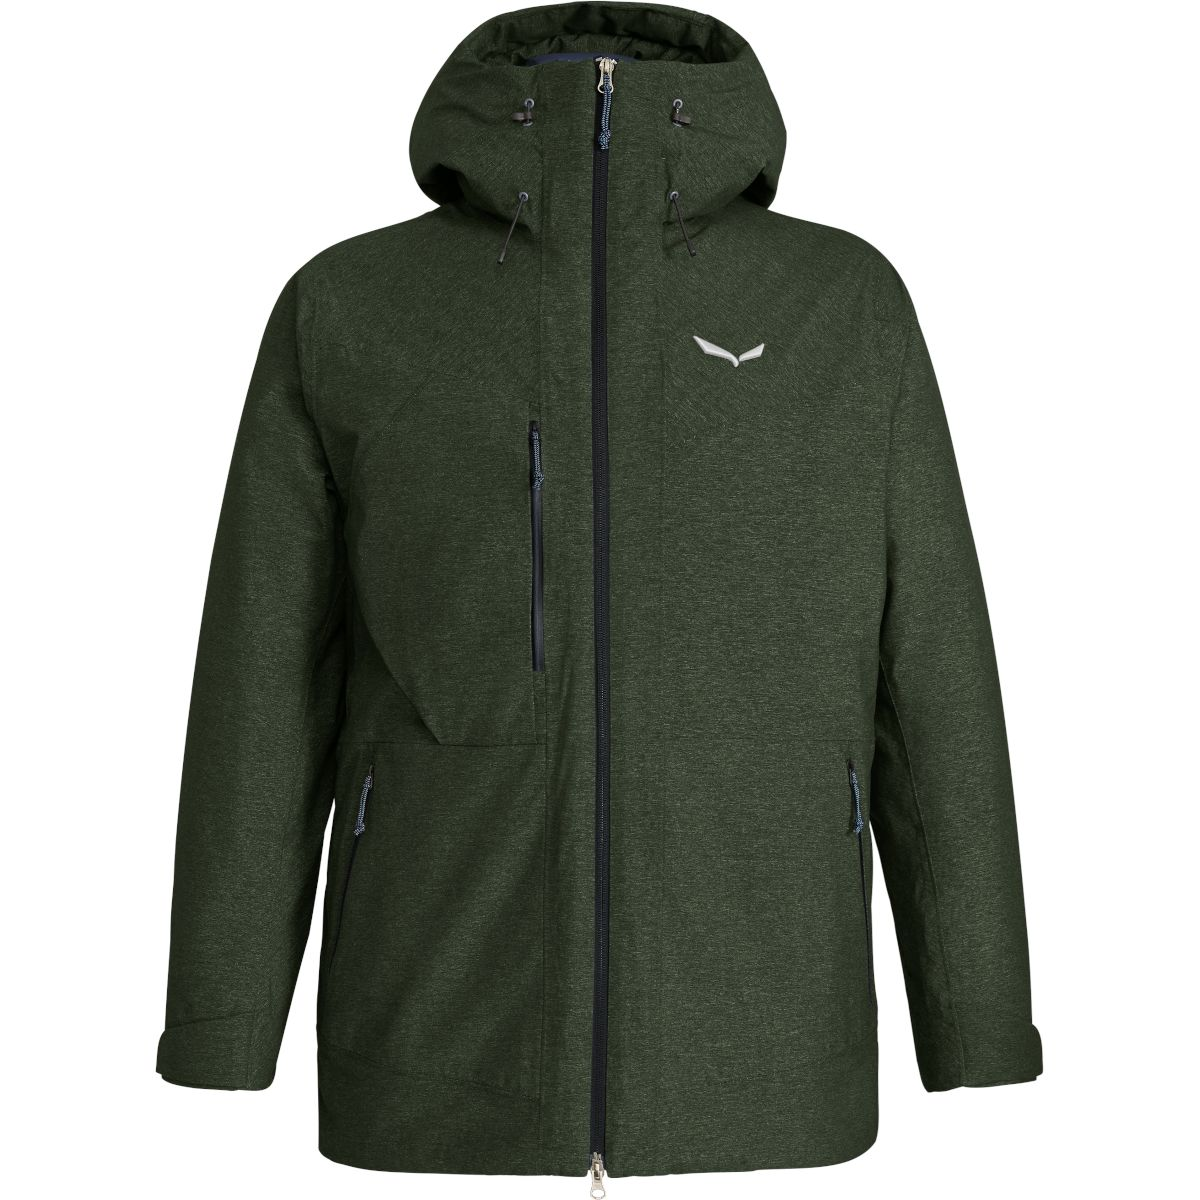 Куртка Salewa Fanes 2 Powertex/Tirolwool Celliant Mns Jacket